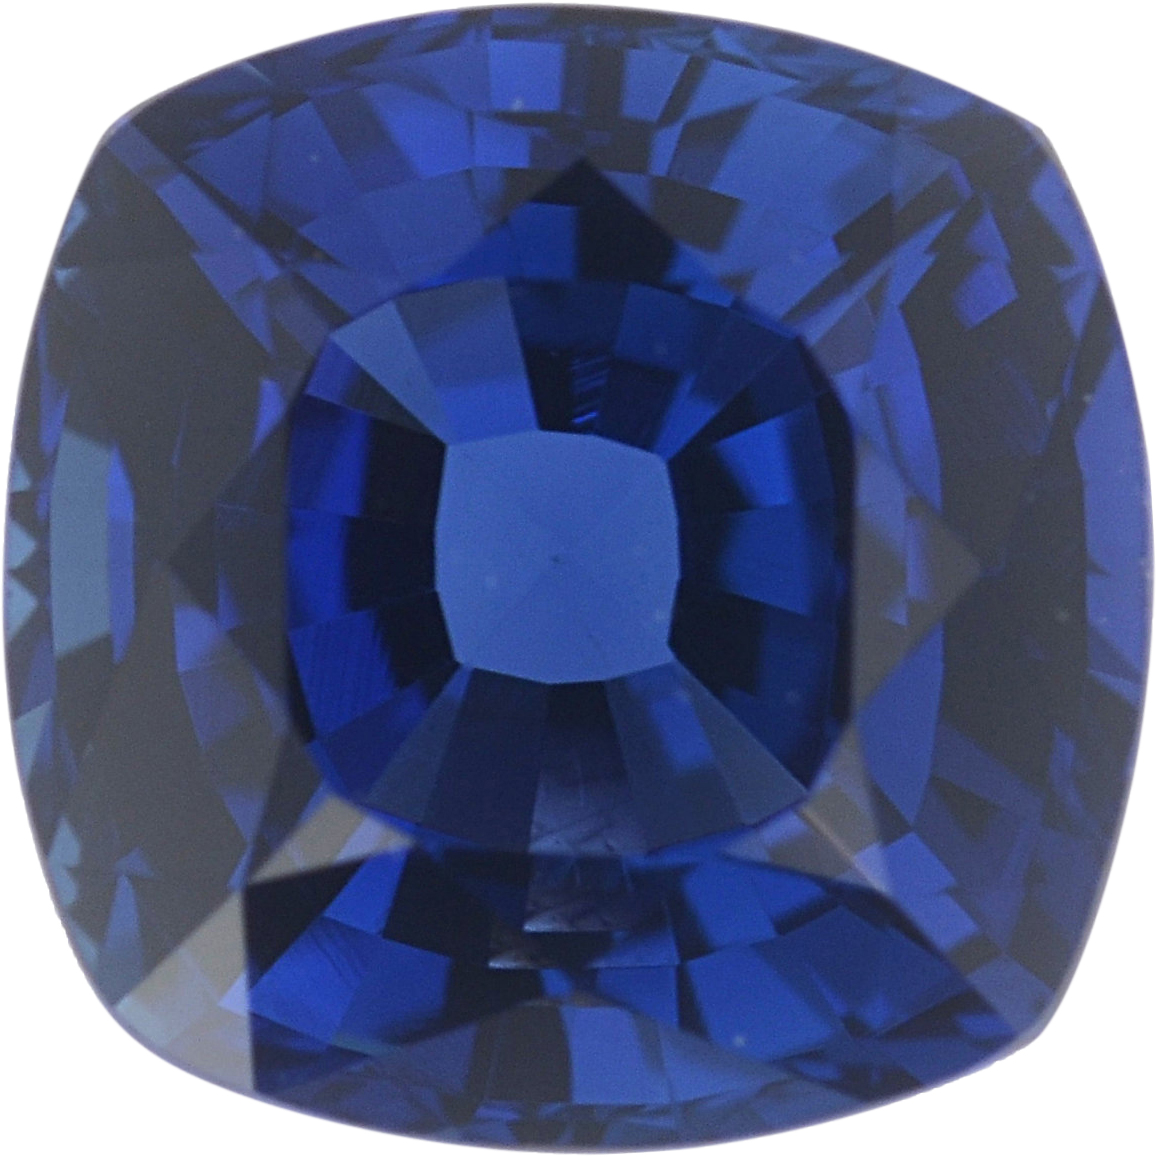 5.43 x 5.41 mm, Blue Loose Sapphire Gemstone in Antique Square Cut, 1.03 carats